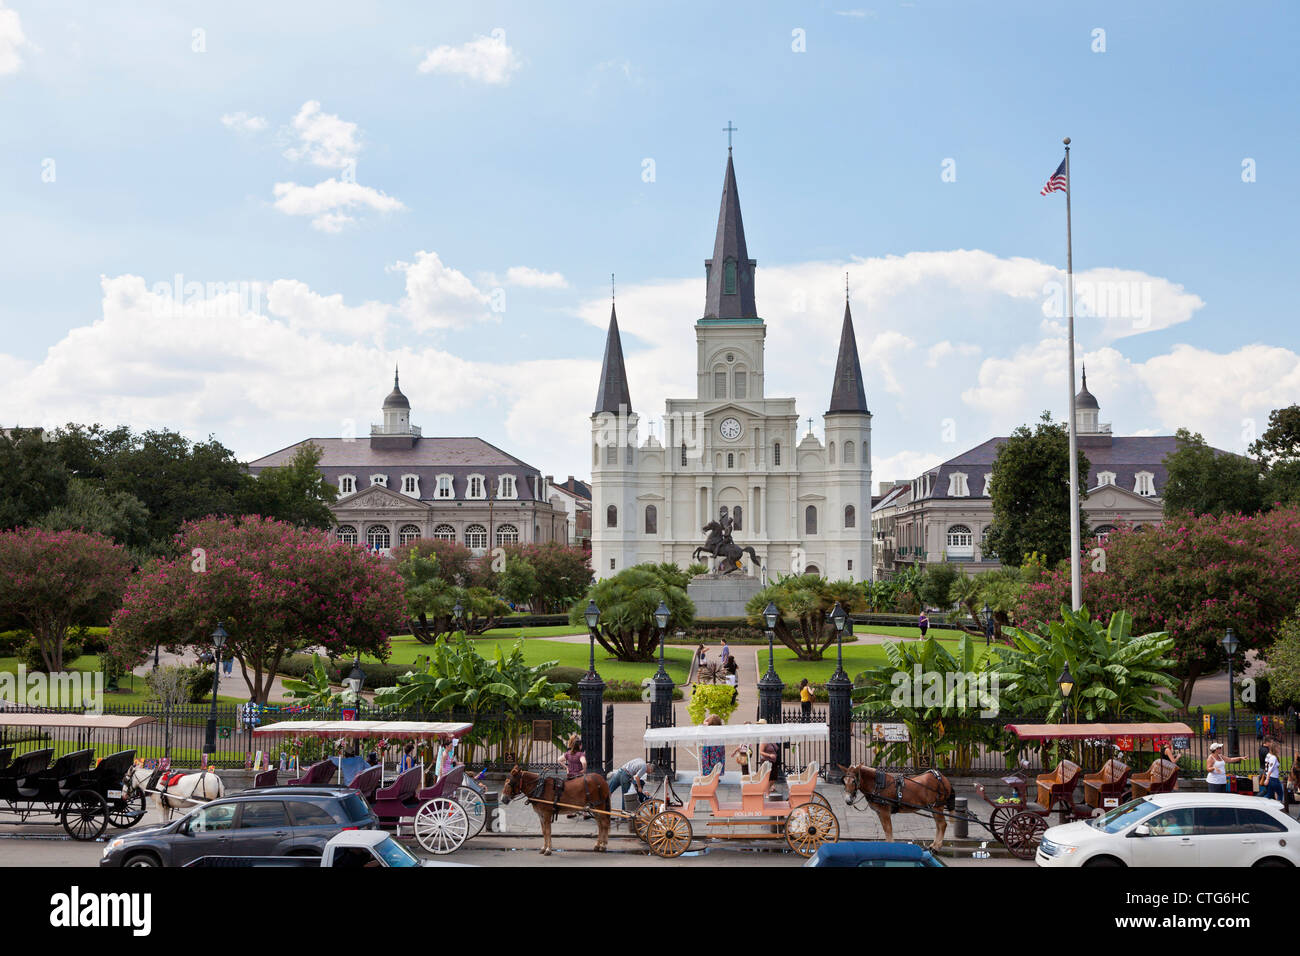 Horse and carriage vendors line up on Decatur Street in front of Jackson Square in the French Quarter of New Orleans, - Stock Image